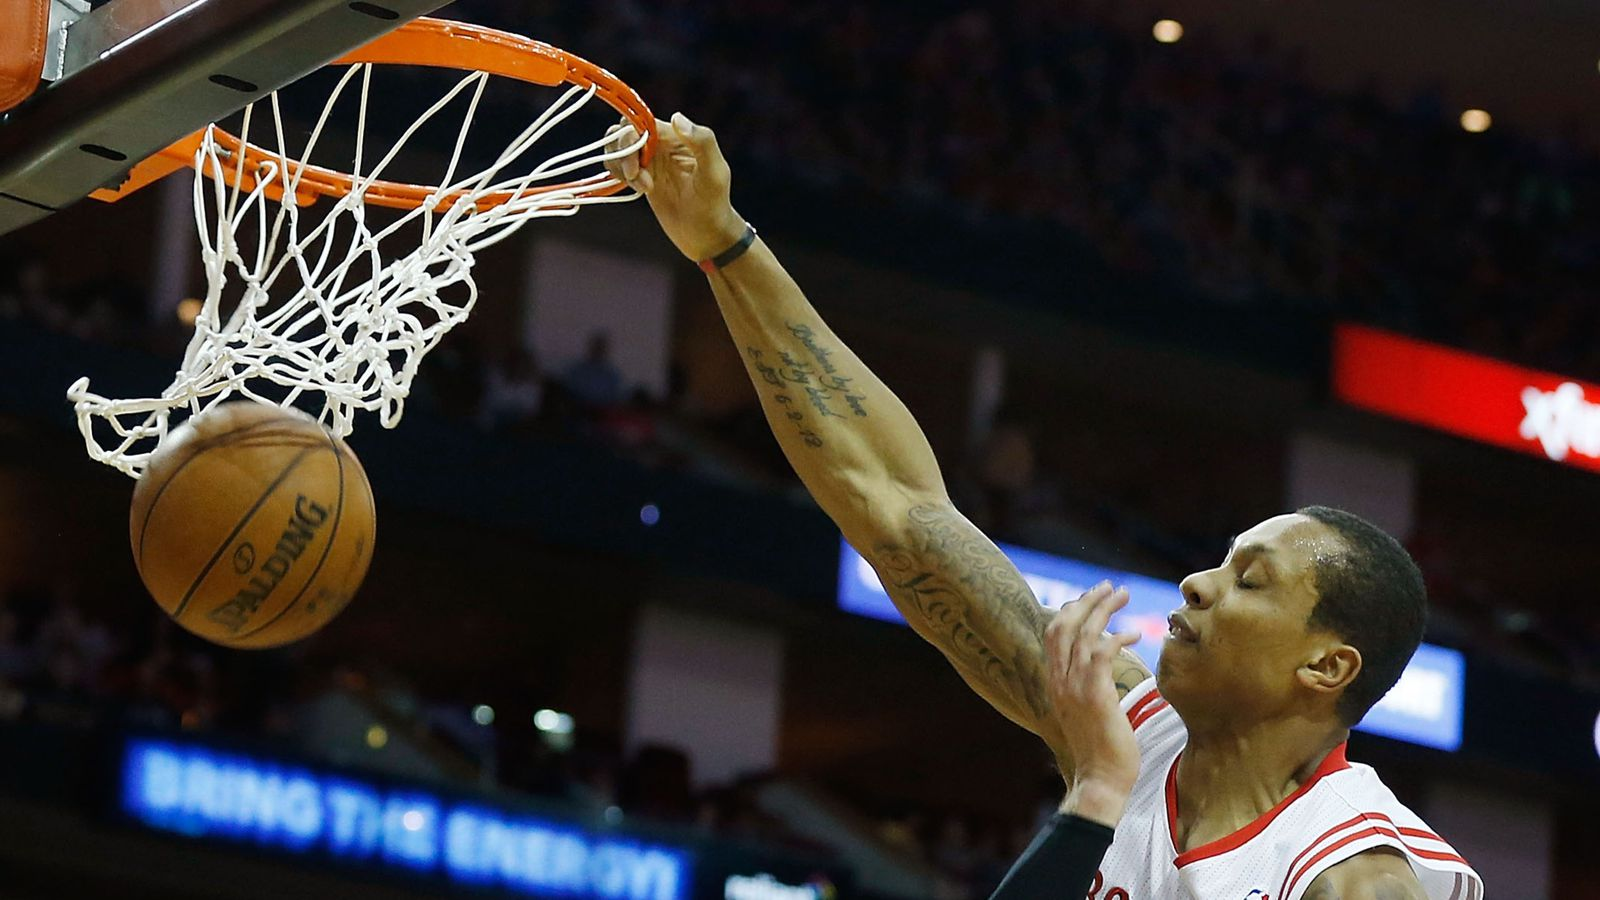 Houston Rockets Playoff Scouting Report: Greg Smith - The ...